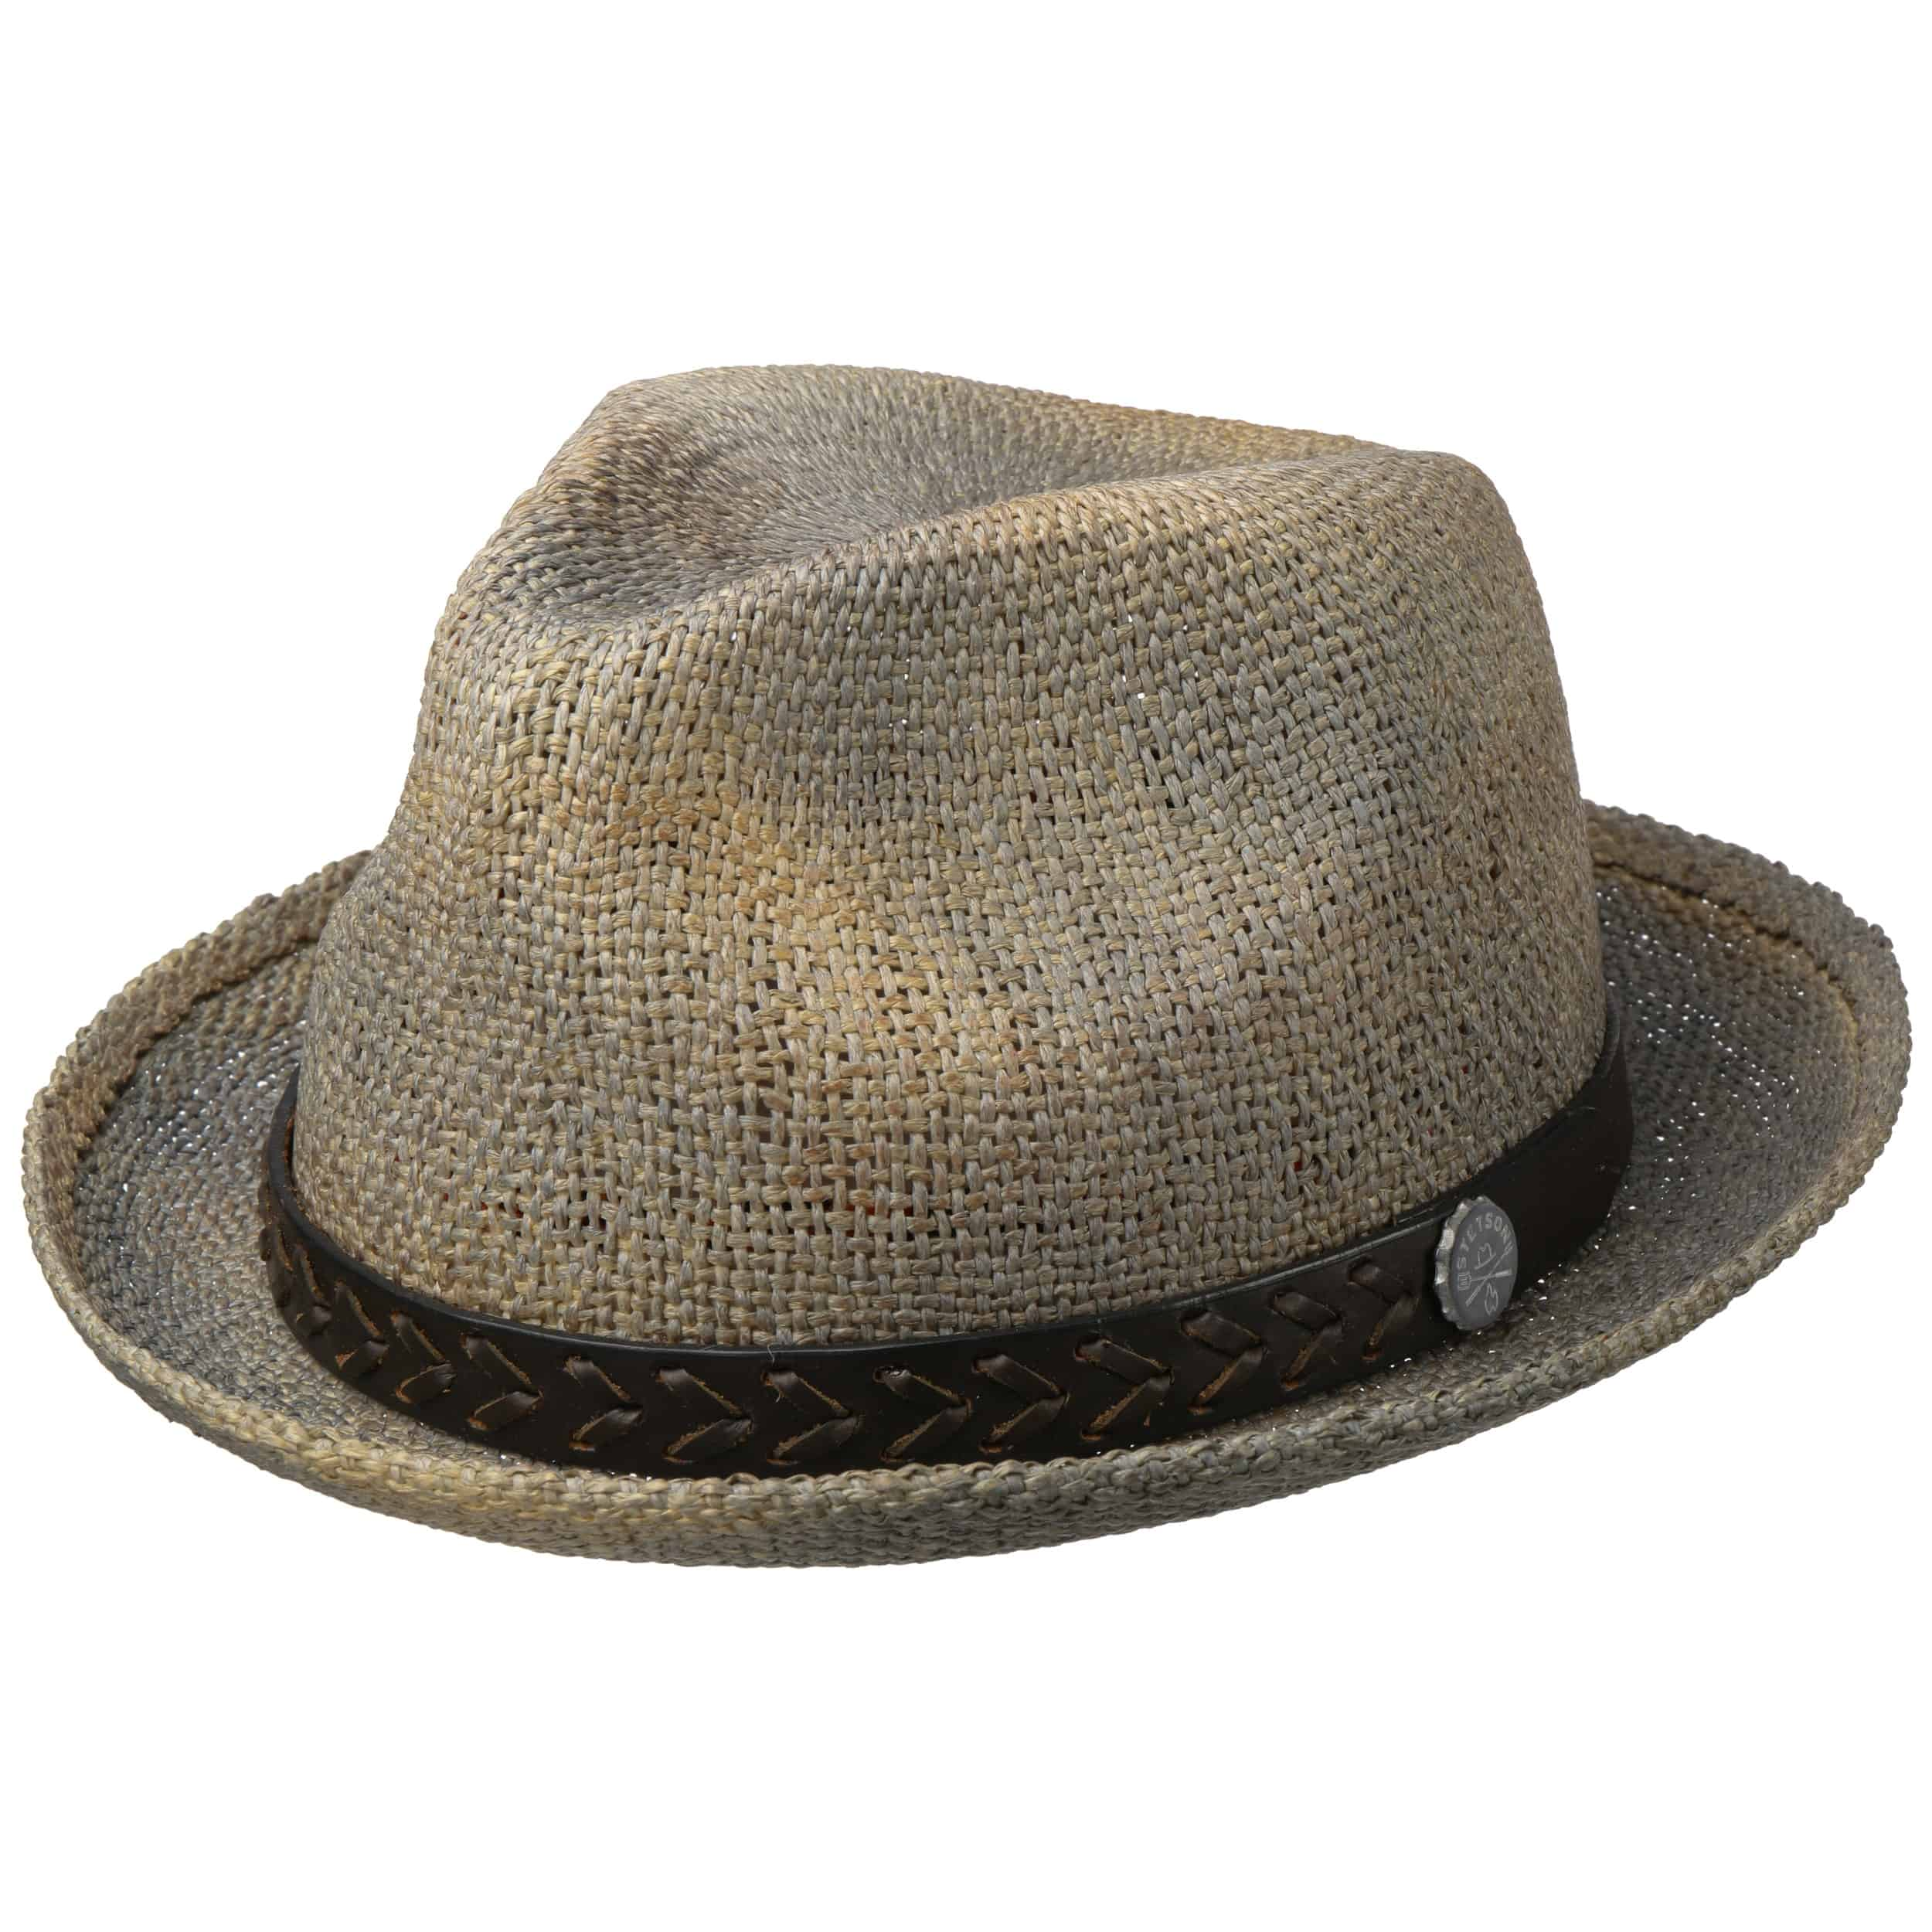 1ebcab3db0e105 ... BBQ Toyo Player Hat Straw Hat by Stetson - beige 1